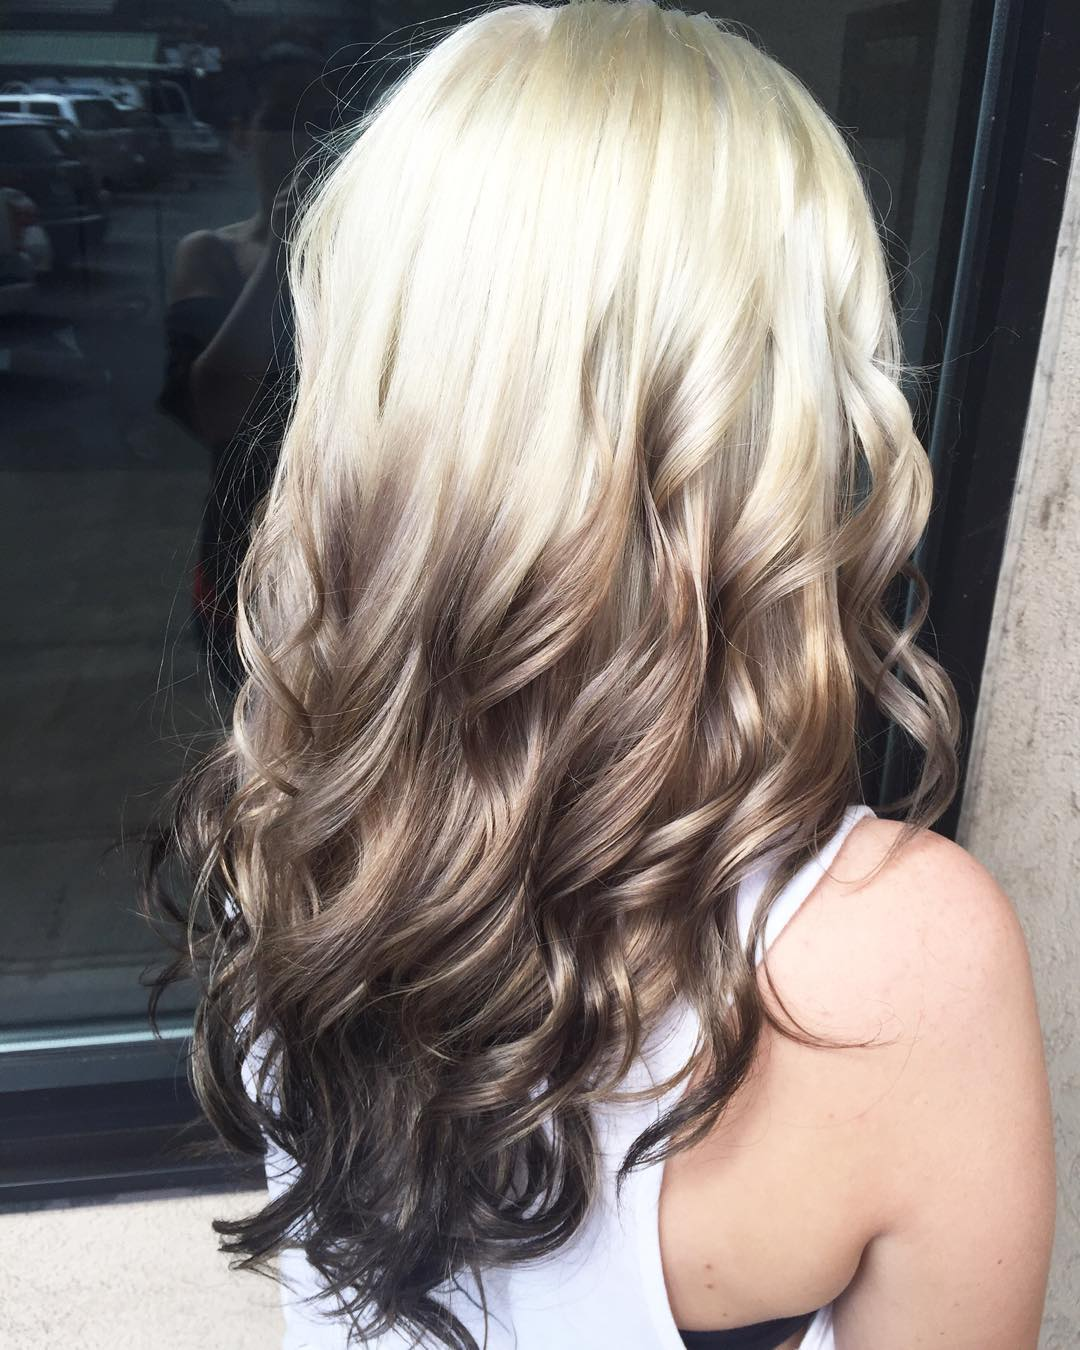 Stupendous 60 Best Ombre Hair Color Ideas For Blond Brown Red And Black Hair Hairstyles For Women Draintrainus